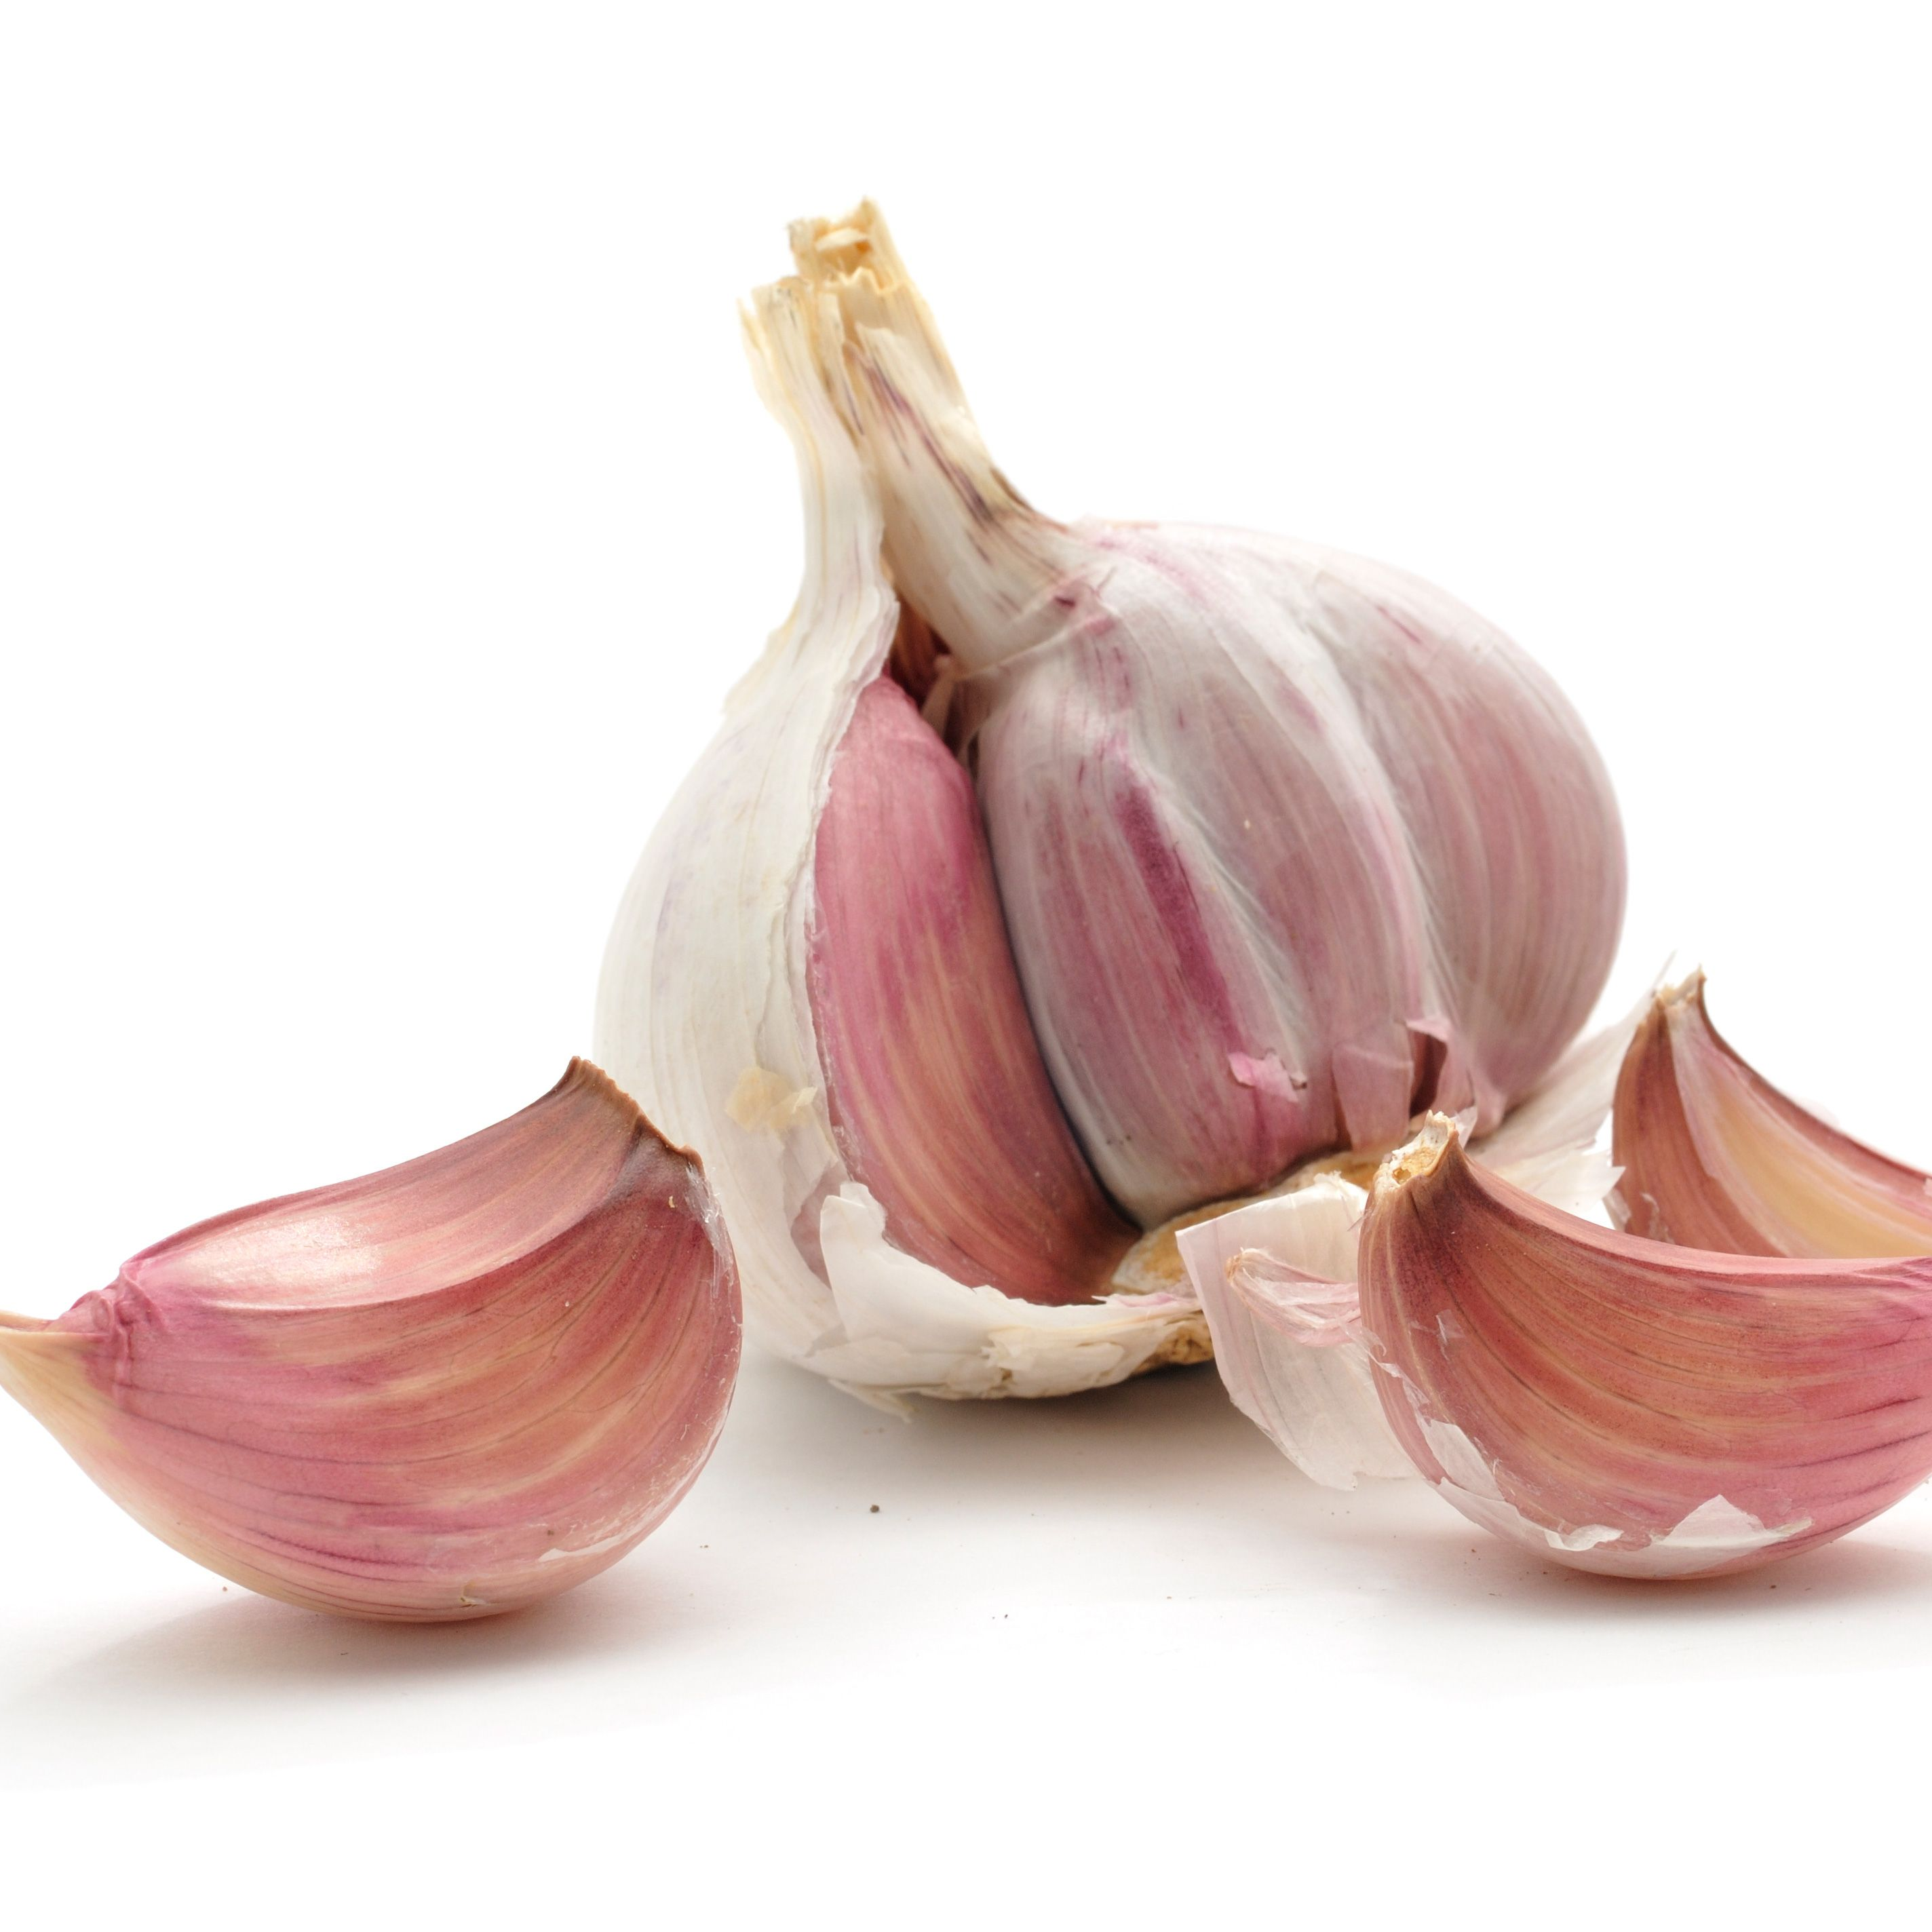 <p><strong>Why should I eat it?</strong> Hormones have a lot to answer for – not least a switch in mood – but when they're balanced, the body is calm and working at its best. Garlic does just that and it really shows in hair and skin, helping it look plumper, clearer and feel much firmer, too.</p><p><strong>The science bit:</strong> As well as balancing hormones, which in turn calms out-of-whack skin, garlic is helps strengthen fibroblasts – the cells that maintain your skin's structure. These fibroblasts live longer and reproduce more healthily, which means much better quality of skin as it gains a plumped-up feel.</p><p><strong>Serve it up:</strong> It's easy to add garlic to food in almost any dish, but what's trickier is ditching bad breath when you've munched the pungent food. Chase it with a glass of milk and chew on some sprigs of mint, and then you can eat all the garlic you'd like without scaring RPattz off.</p>